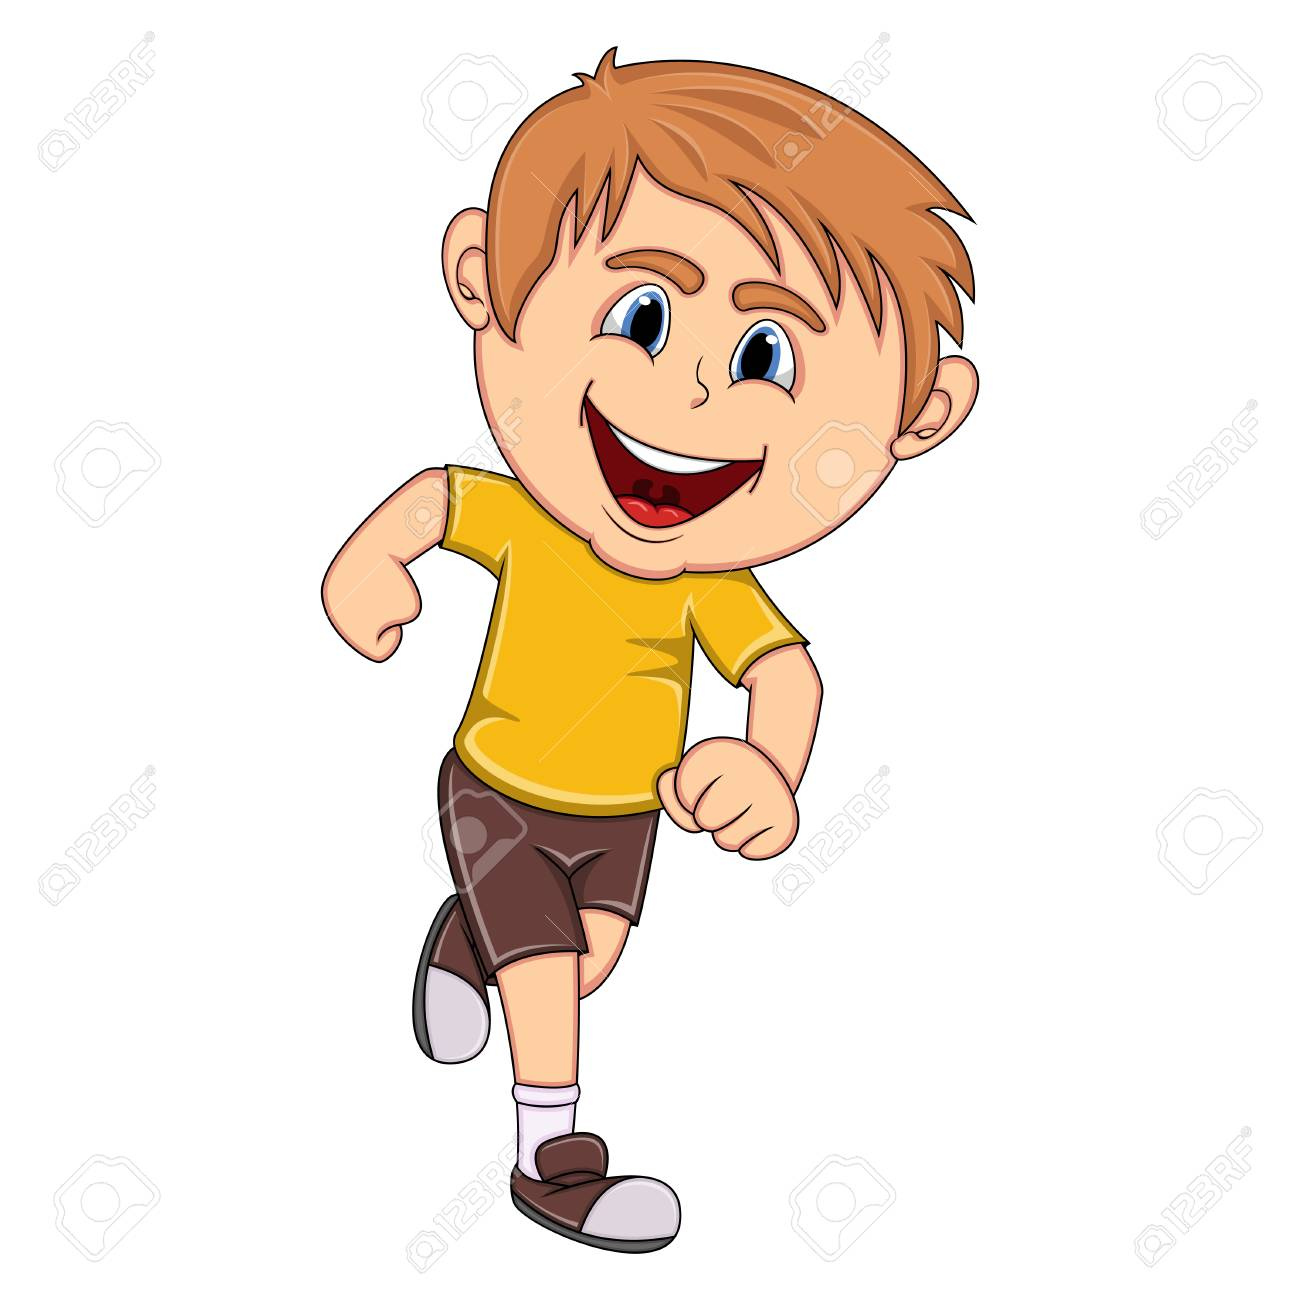 a boy running cartoon royalty free cliparts vectors and stock